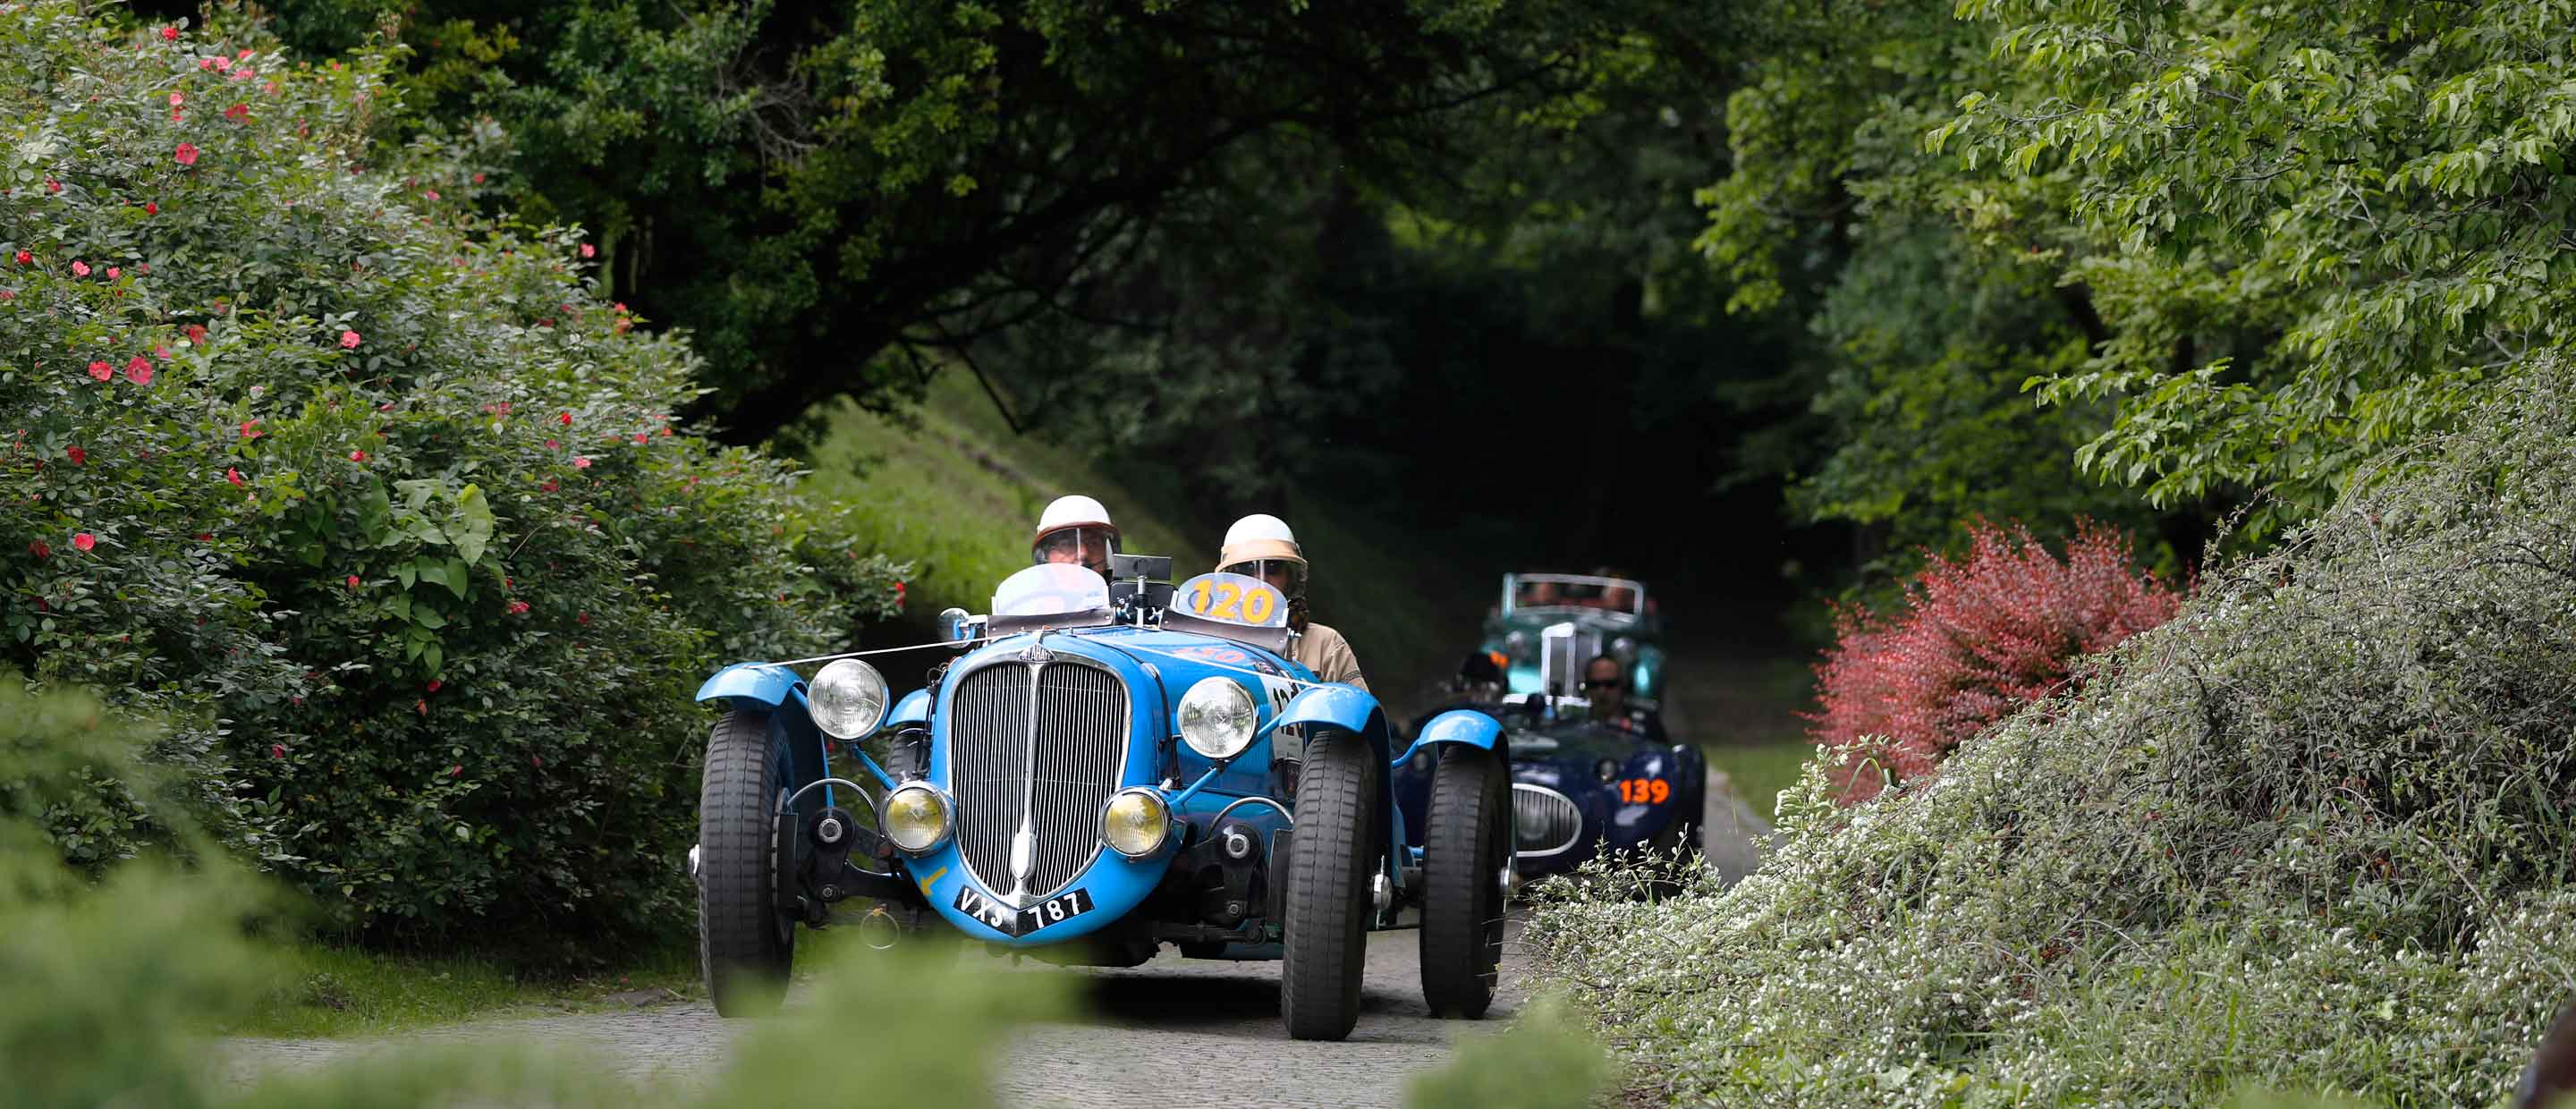 Mille Miglia: the most beautiful race in the world